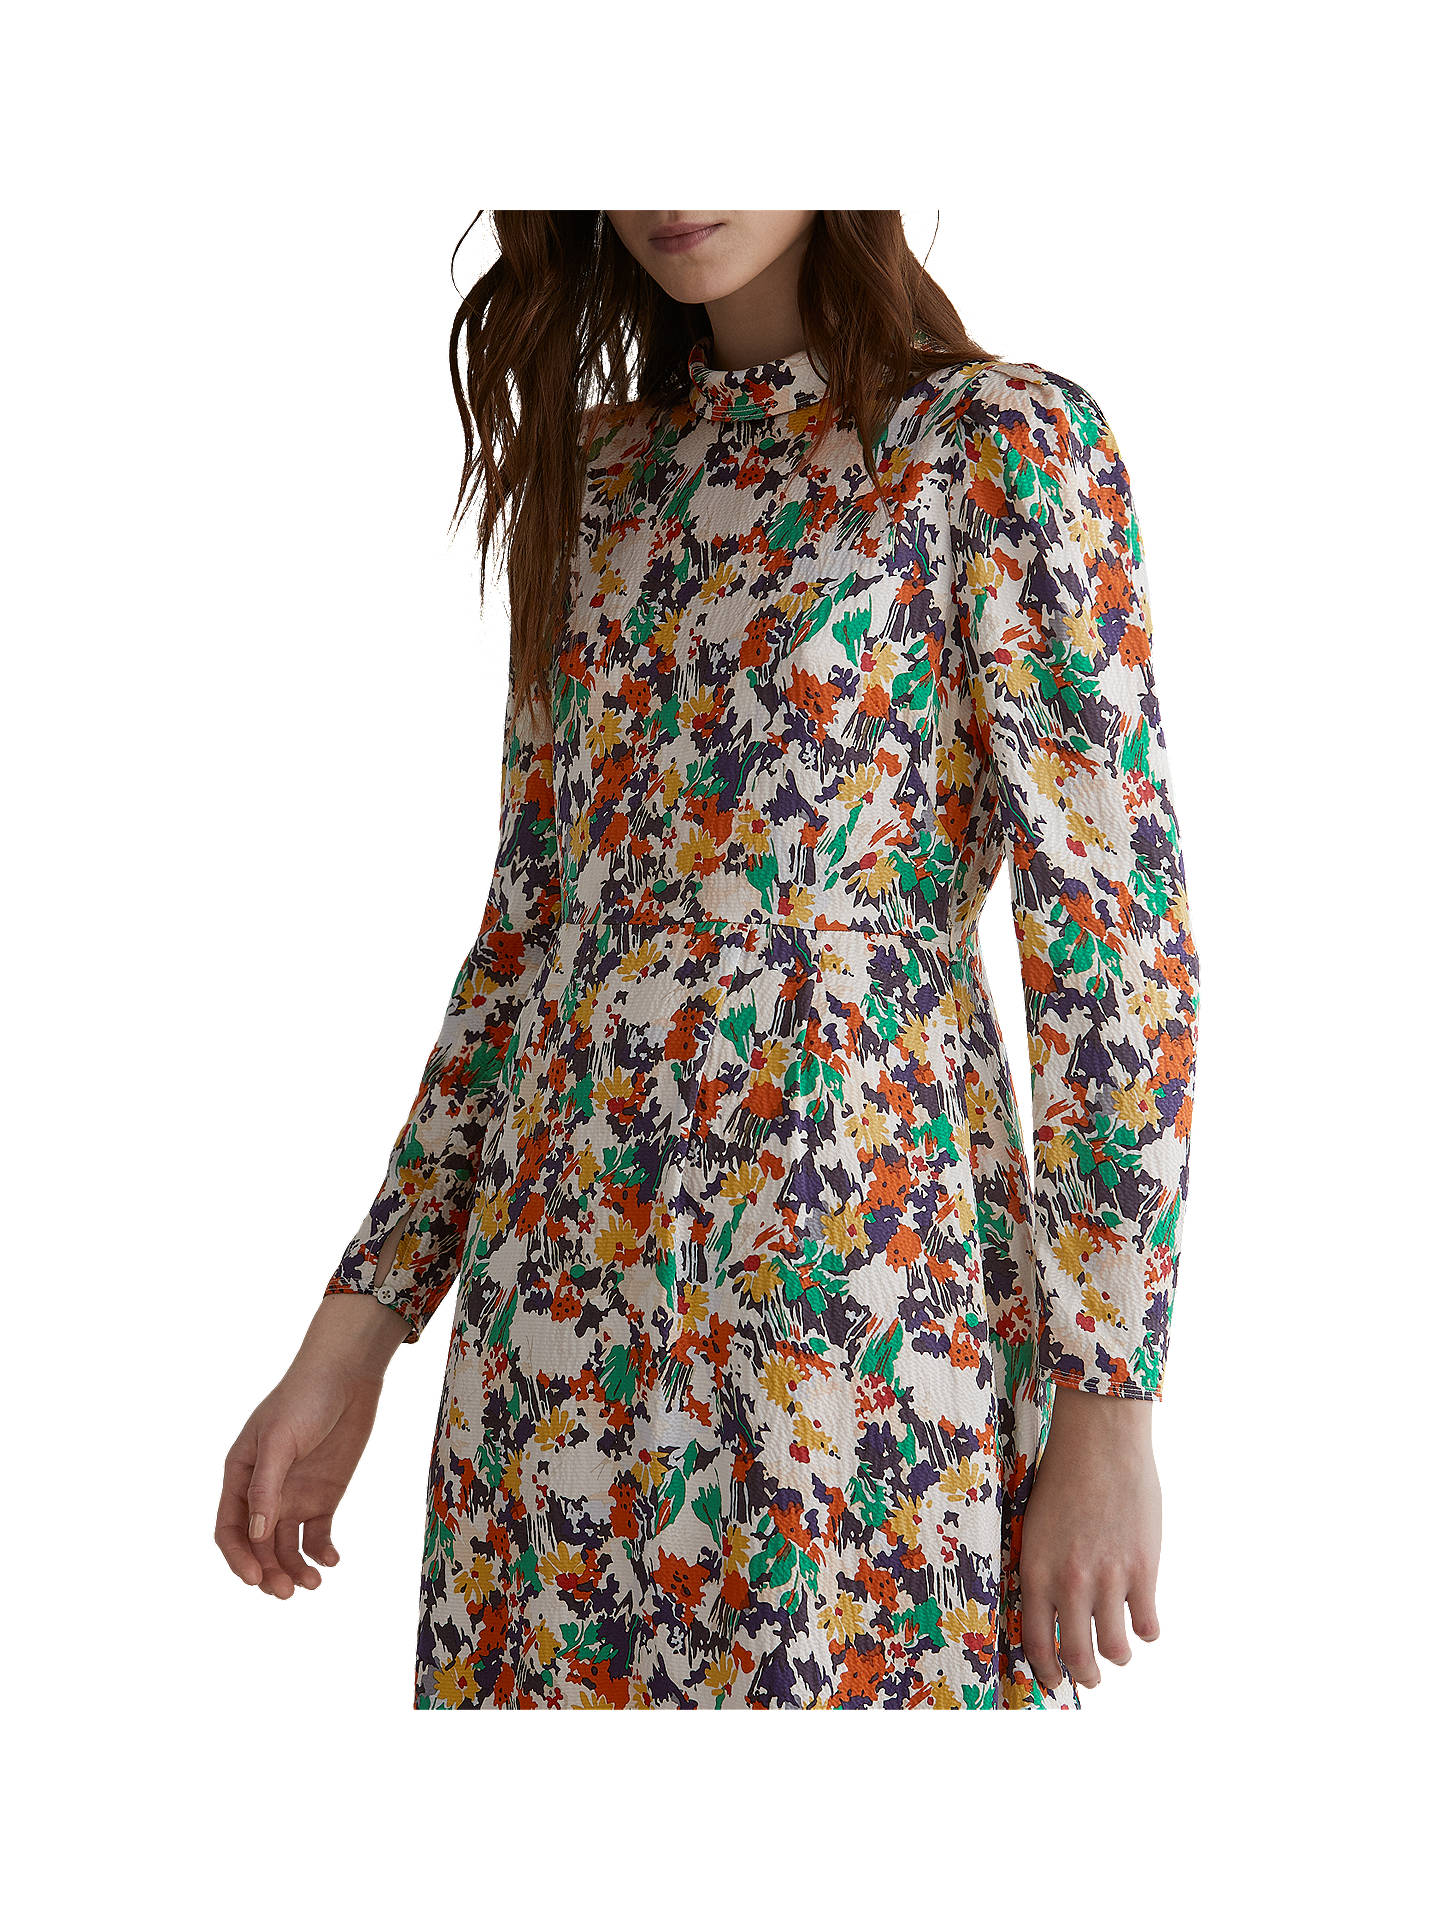 BuyToast Meadow Print Silk Blend Dress, Multi, 8 Online at johnlewis.com